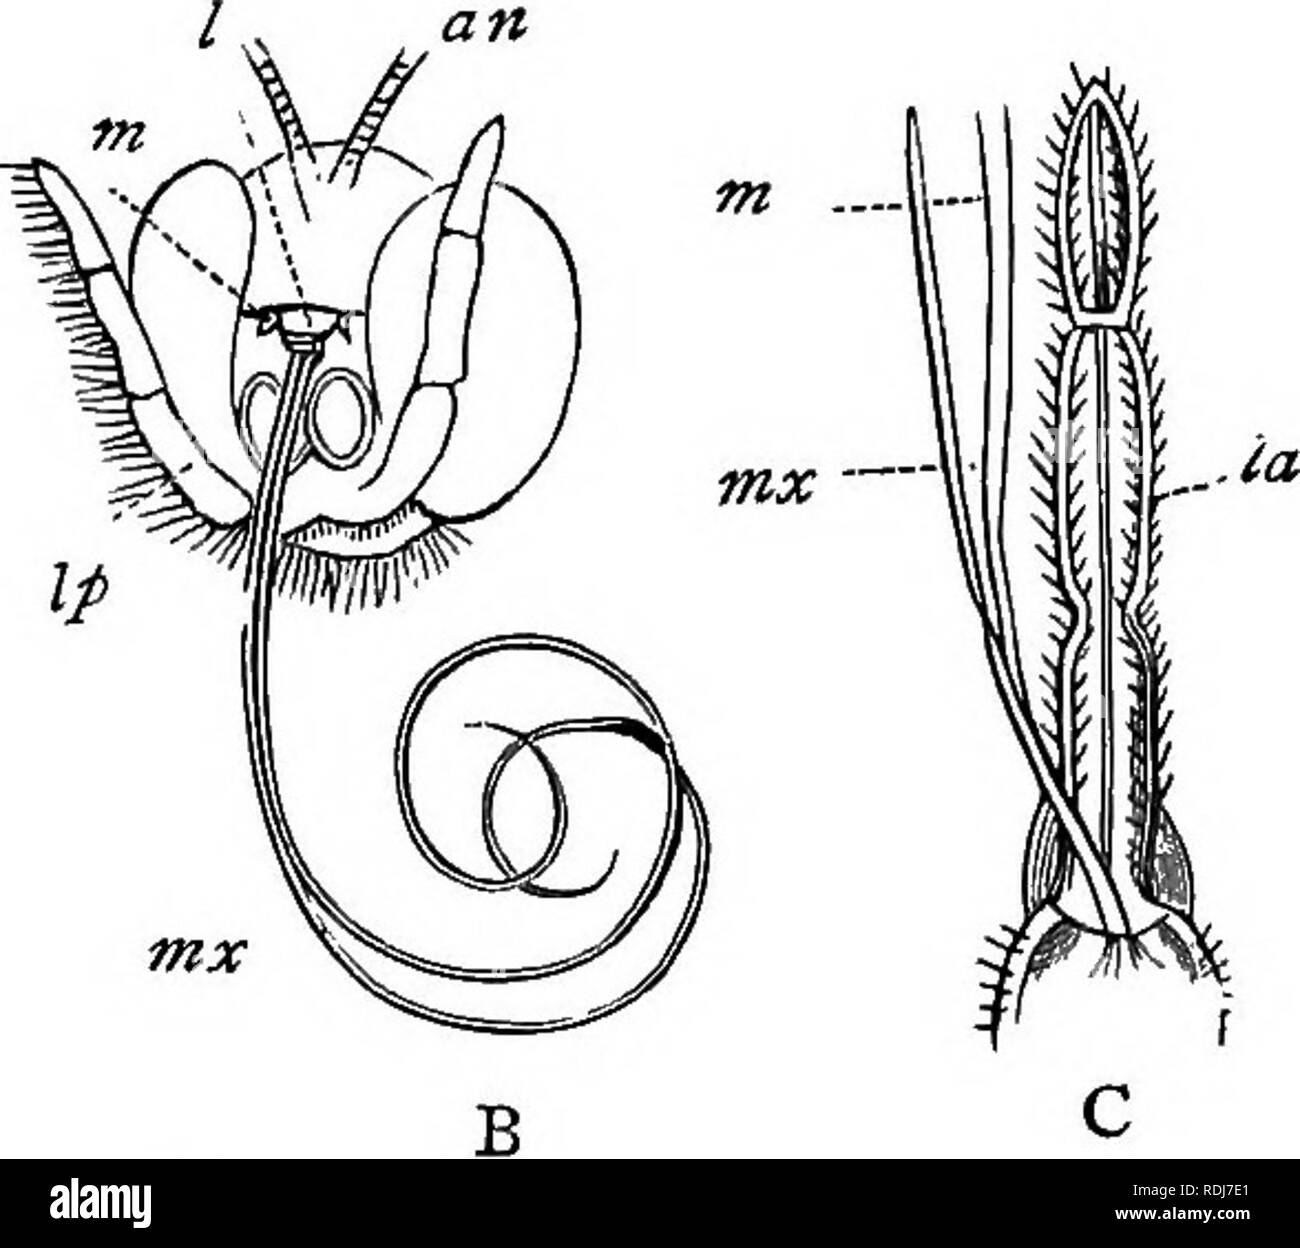 . A text-book of agricultural zoology. Zoology, Economic. Pig. 60.—Mouth Parts of Insect3. A, Biting mouth parts; b, sucking, and o, piercing mouths: I, upper lip; m, man- dibles ; ma:, maxillEe; mp, maxillary palpi; Za, lower lip; Zp, labial palpi; a^i, an- tennae. (Nicholson.) prevents those insects possessing it from doing any damage. Those groups with this latter type of oral structure aid more or less in the fertilisation of plants. It will be chiefly, then, amongst the biting and piercing mouthed insects that the injurious species will be found. But we must bear in mind that the suctoria - Stock Image